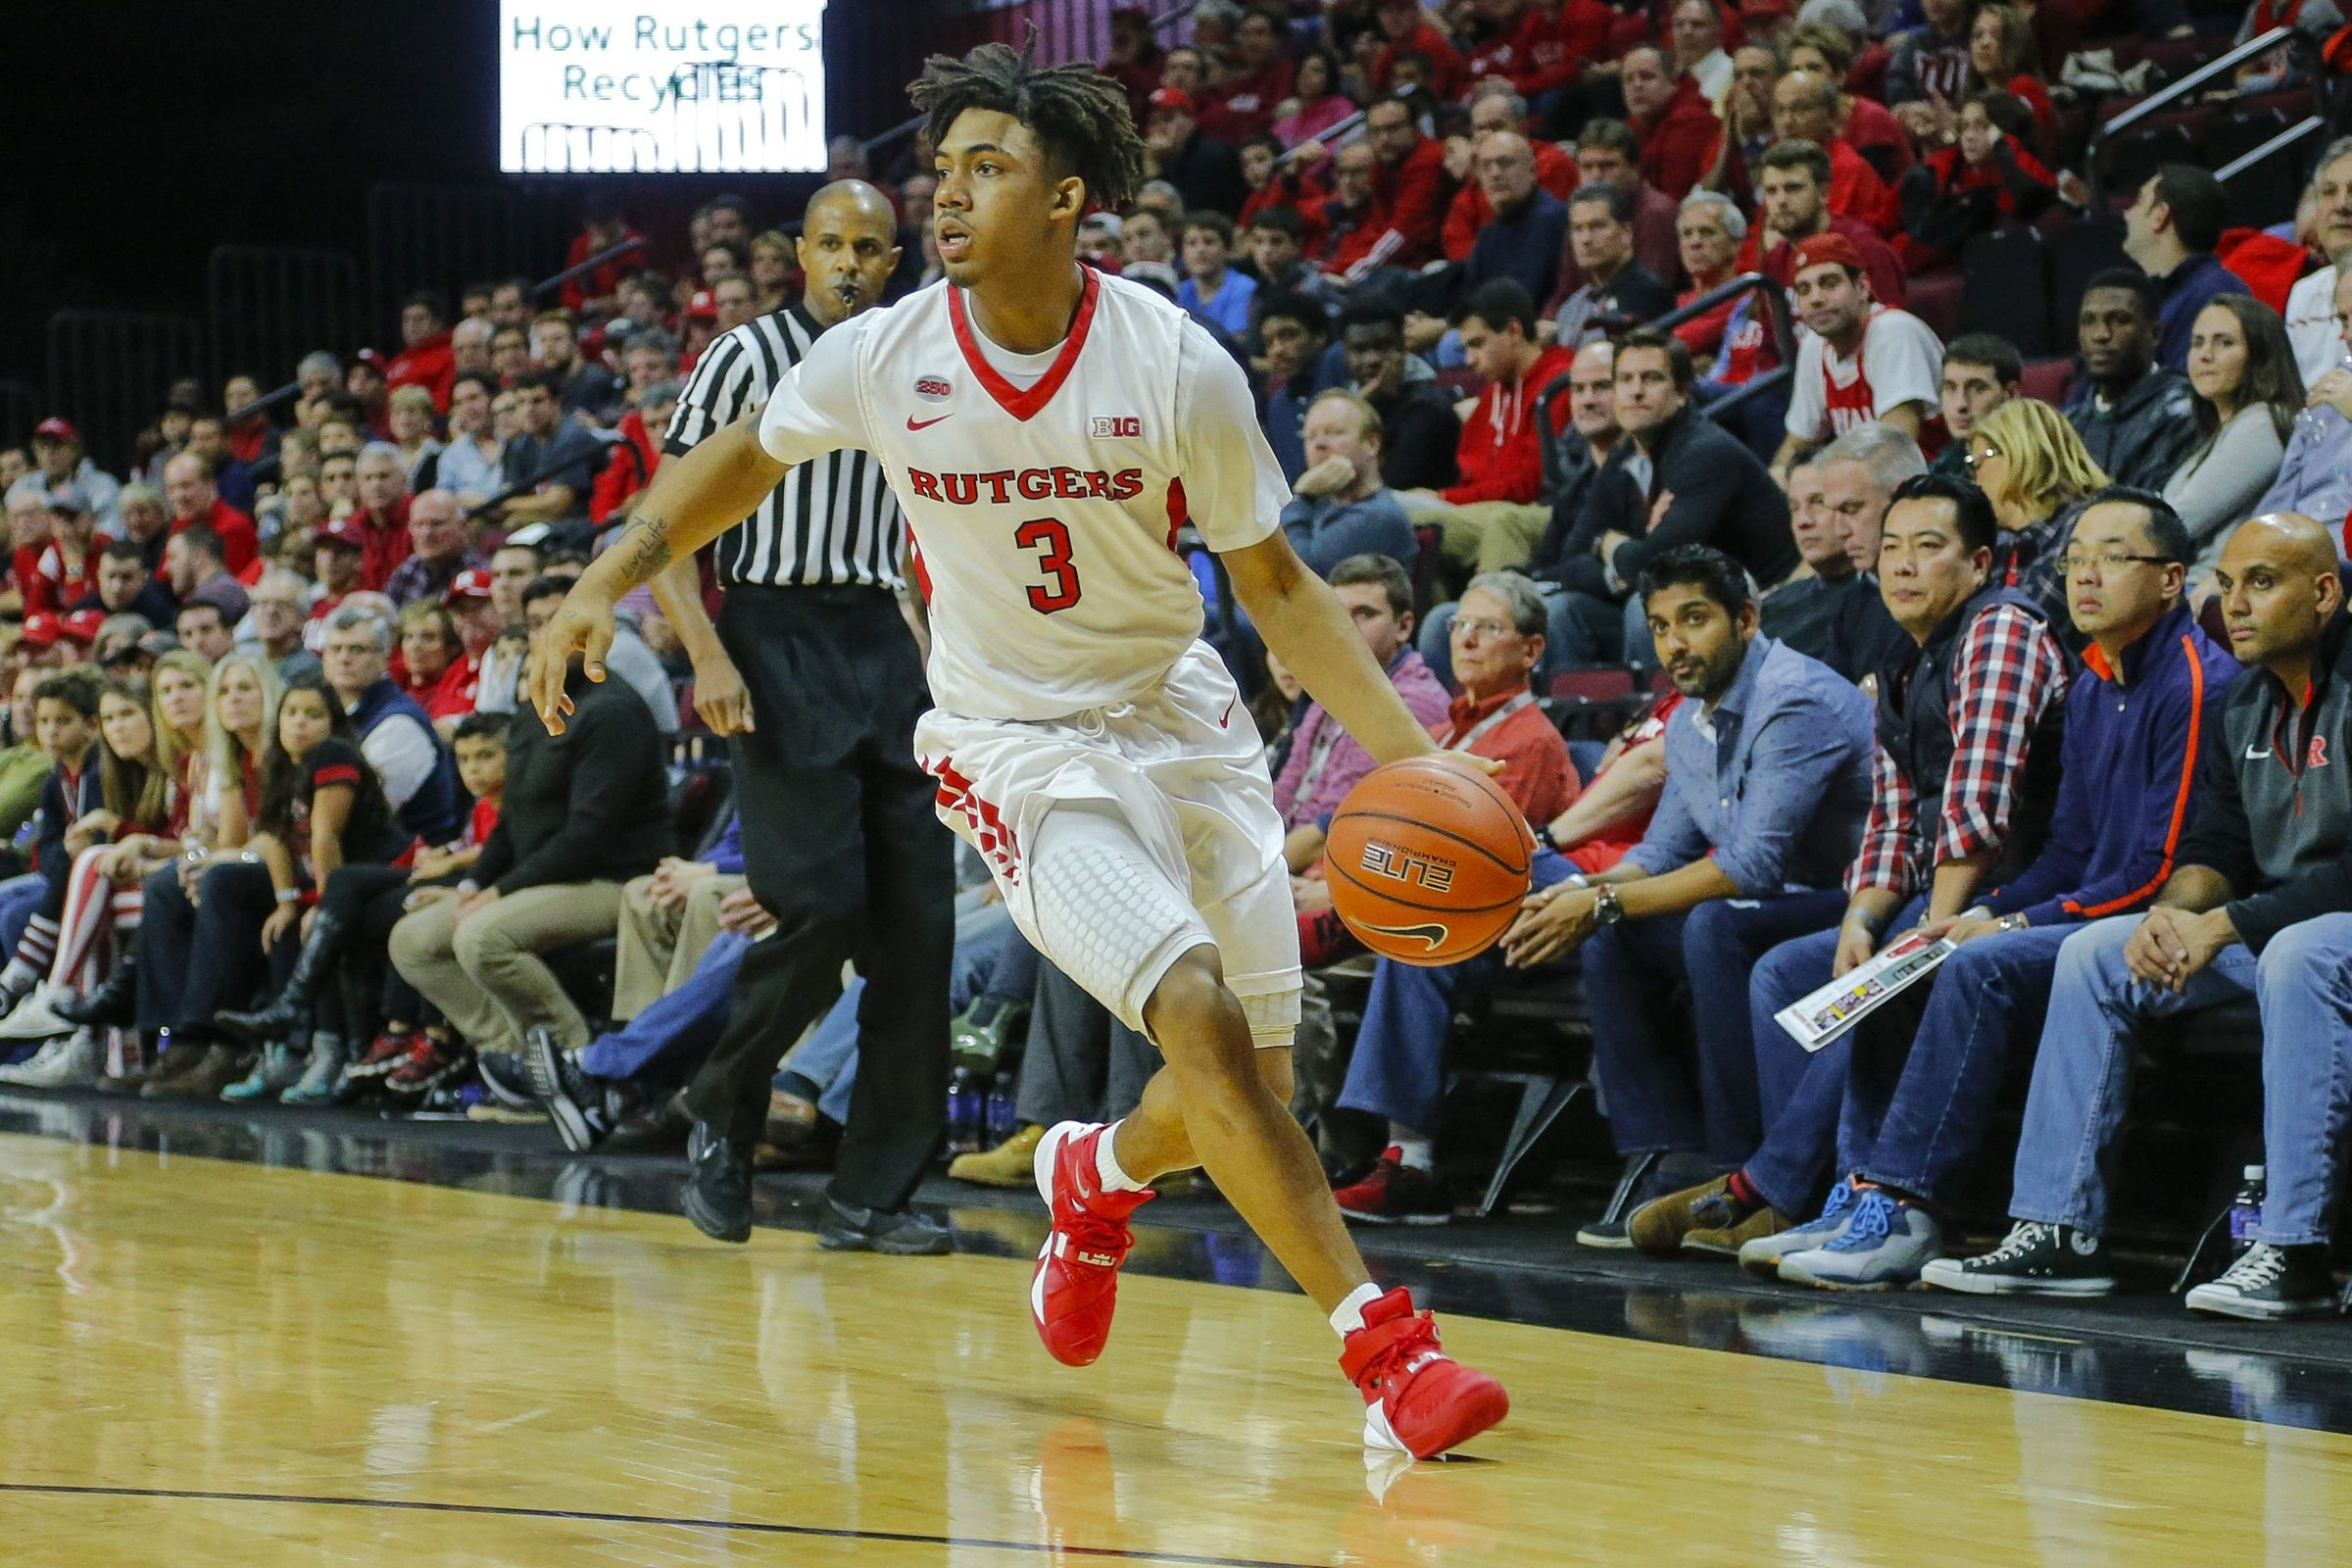 Rutgers Scarlet Knights Basketball Rutgers Basketball: In...